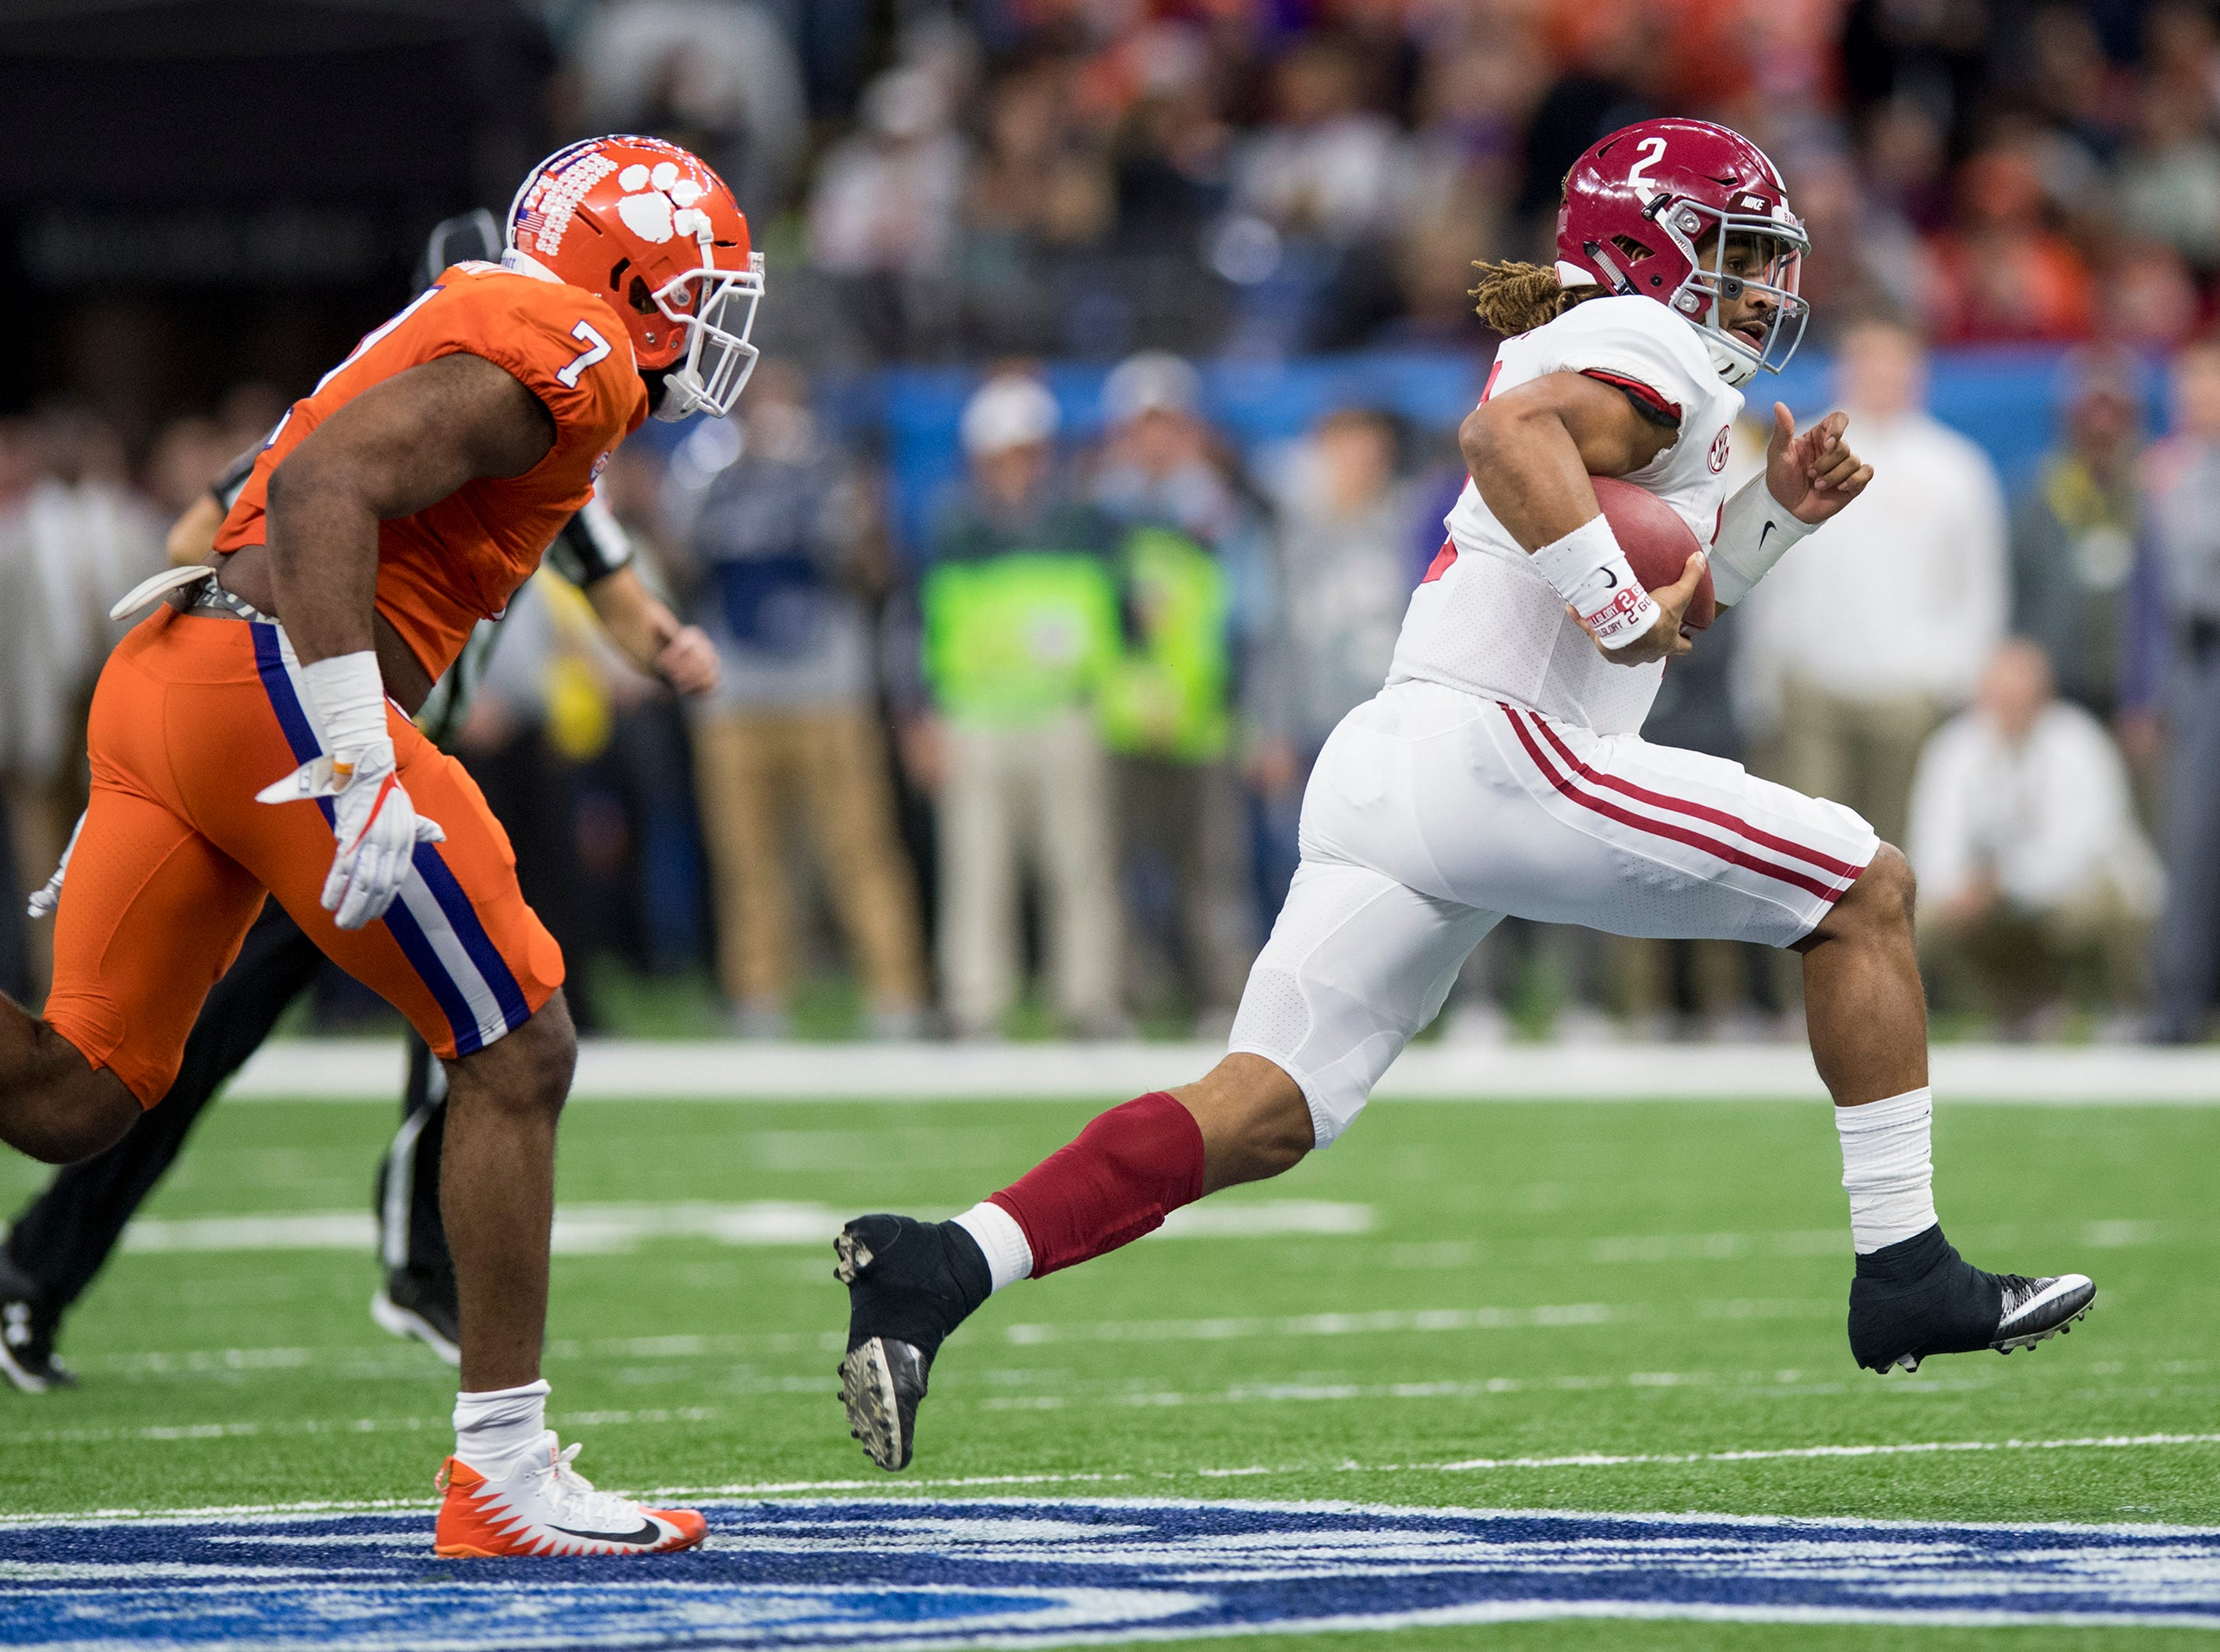 Alabama quarterback Jalen Hurts (2) carries against Clemson in first half action in the Sugar Bowl at the Superdome in New Orleans, La. on Monday January 1, 2018.